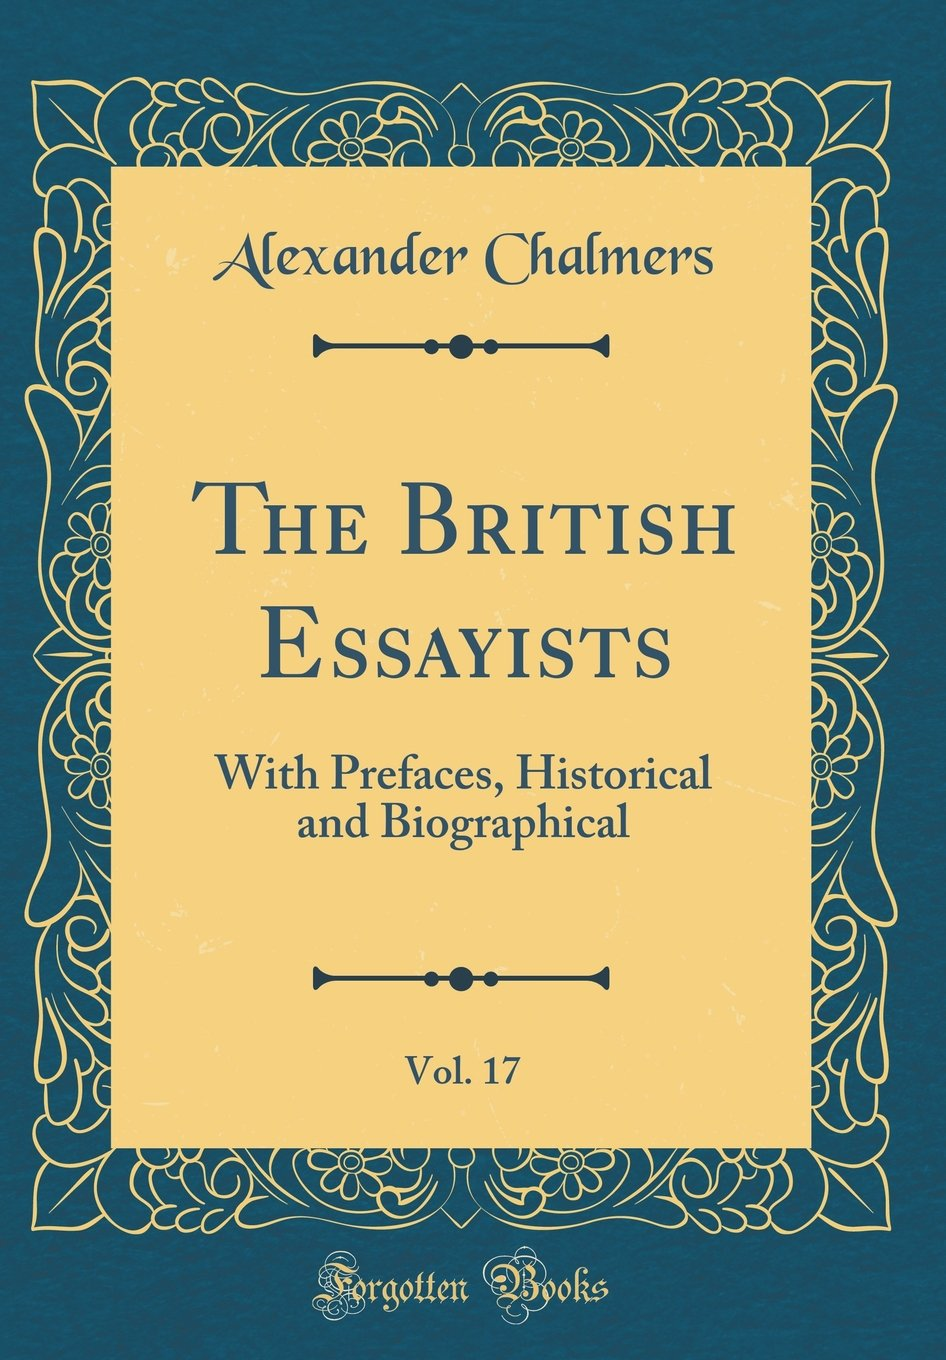 The British Essayists, Vol. 17: With Prefaces, Historical and Biographical (Classic Reprint) PDF